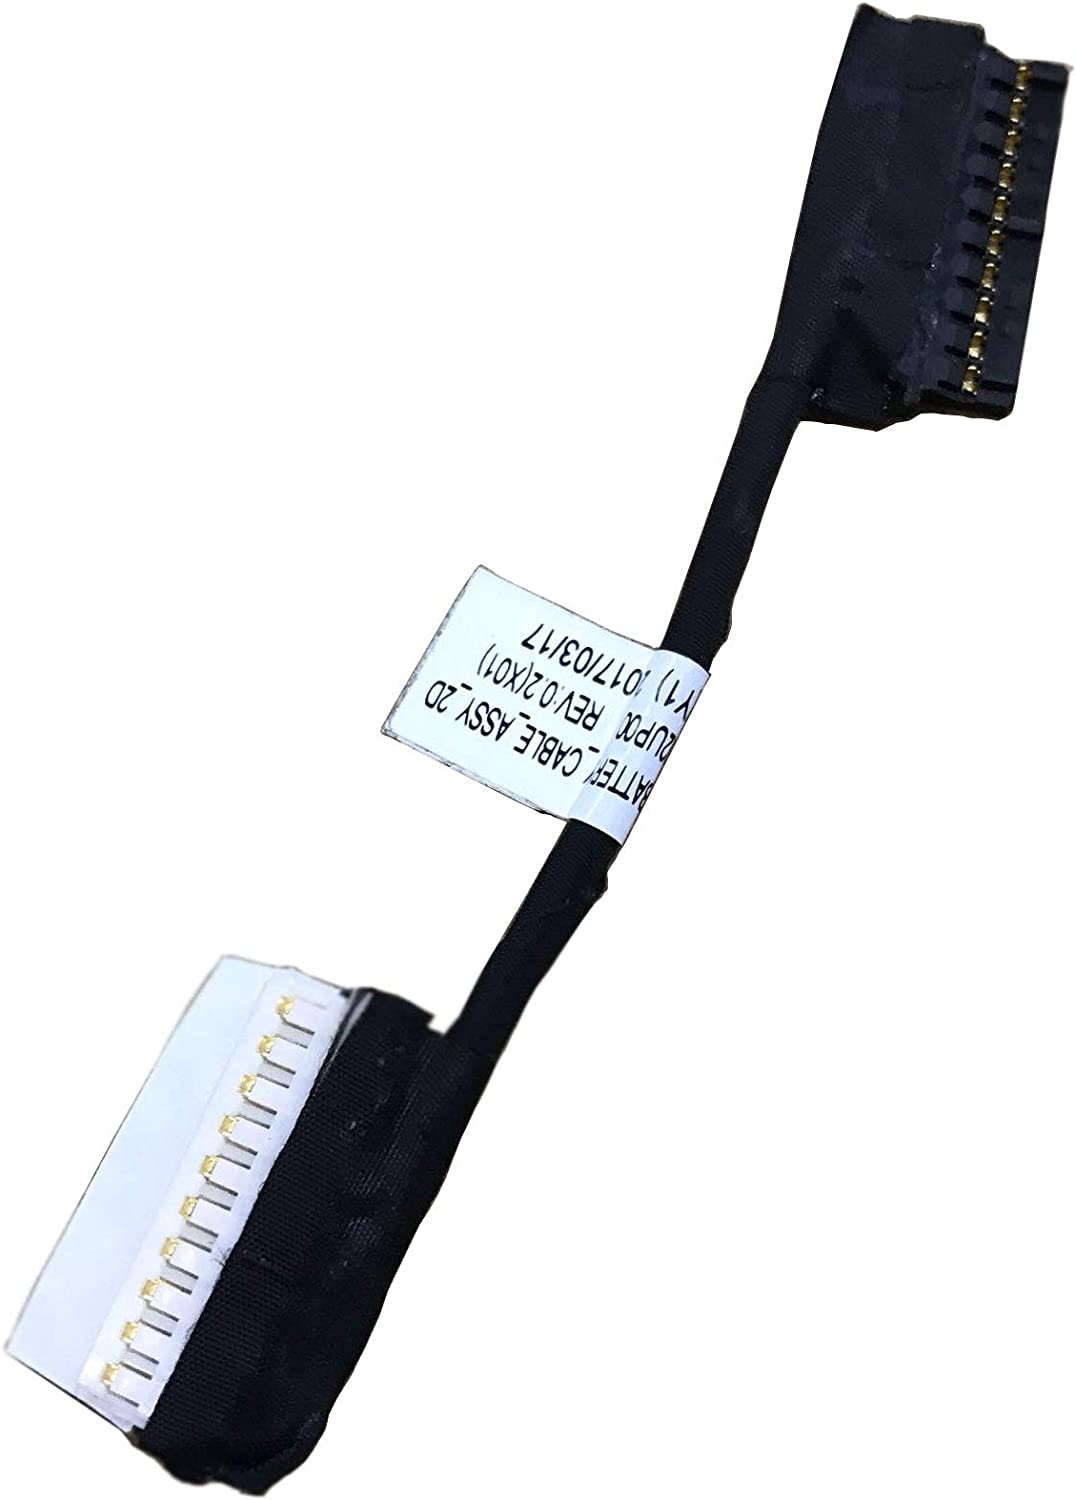 FEMAI Compatible Battery Cable Replacement for Dell NKNK3 Inspiron G7 15 7000 7577 7587 7588 Series Notebook CKF50 0NKNK3 I7588-7378BLK-PUS